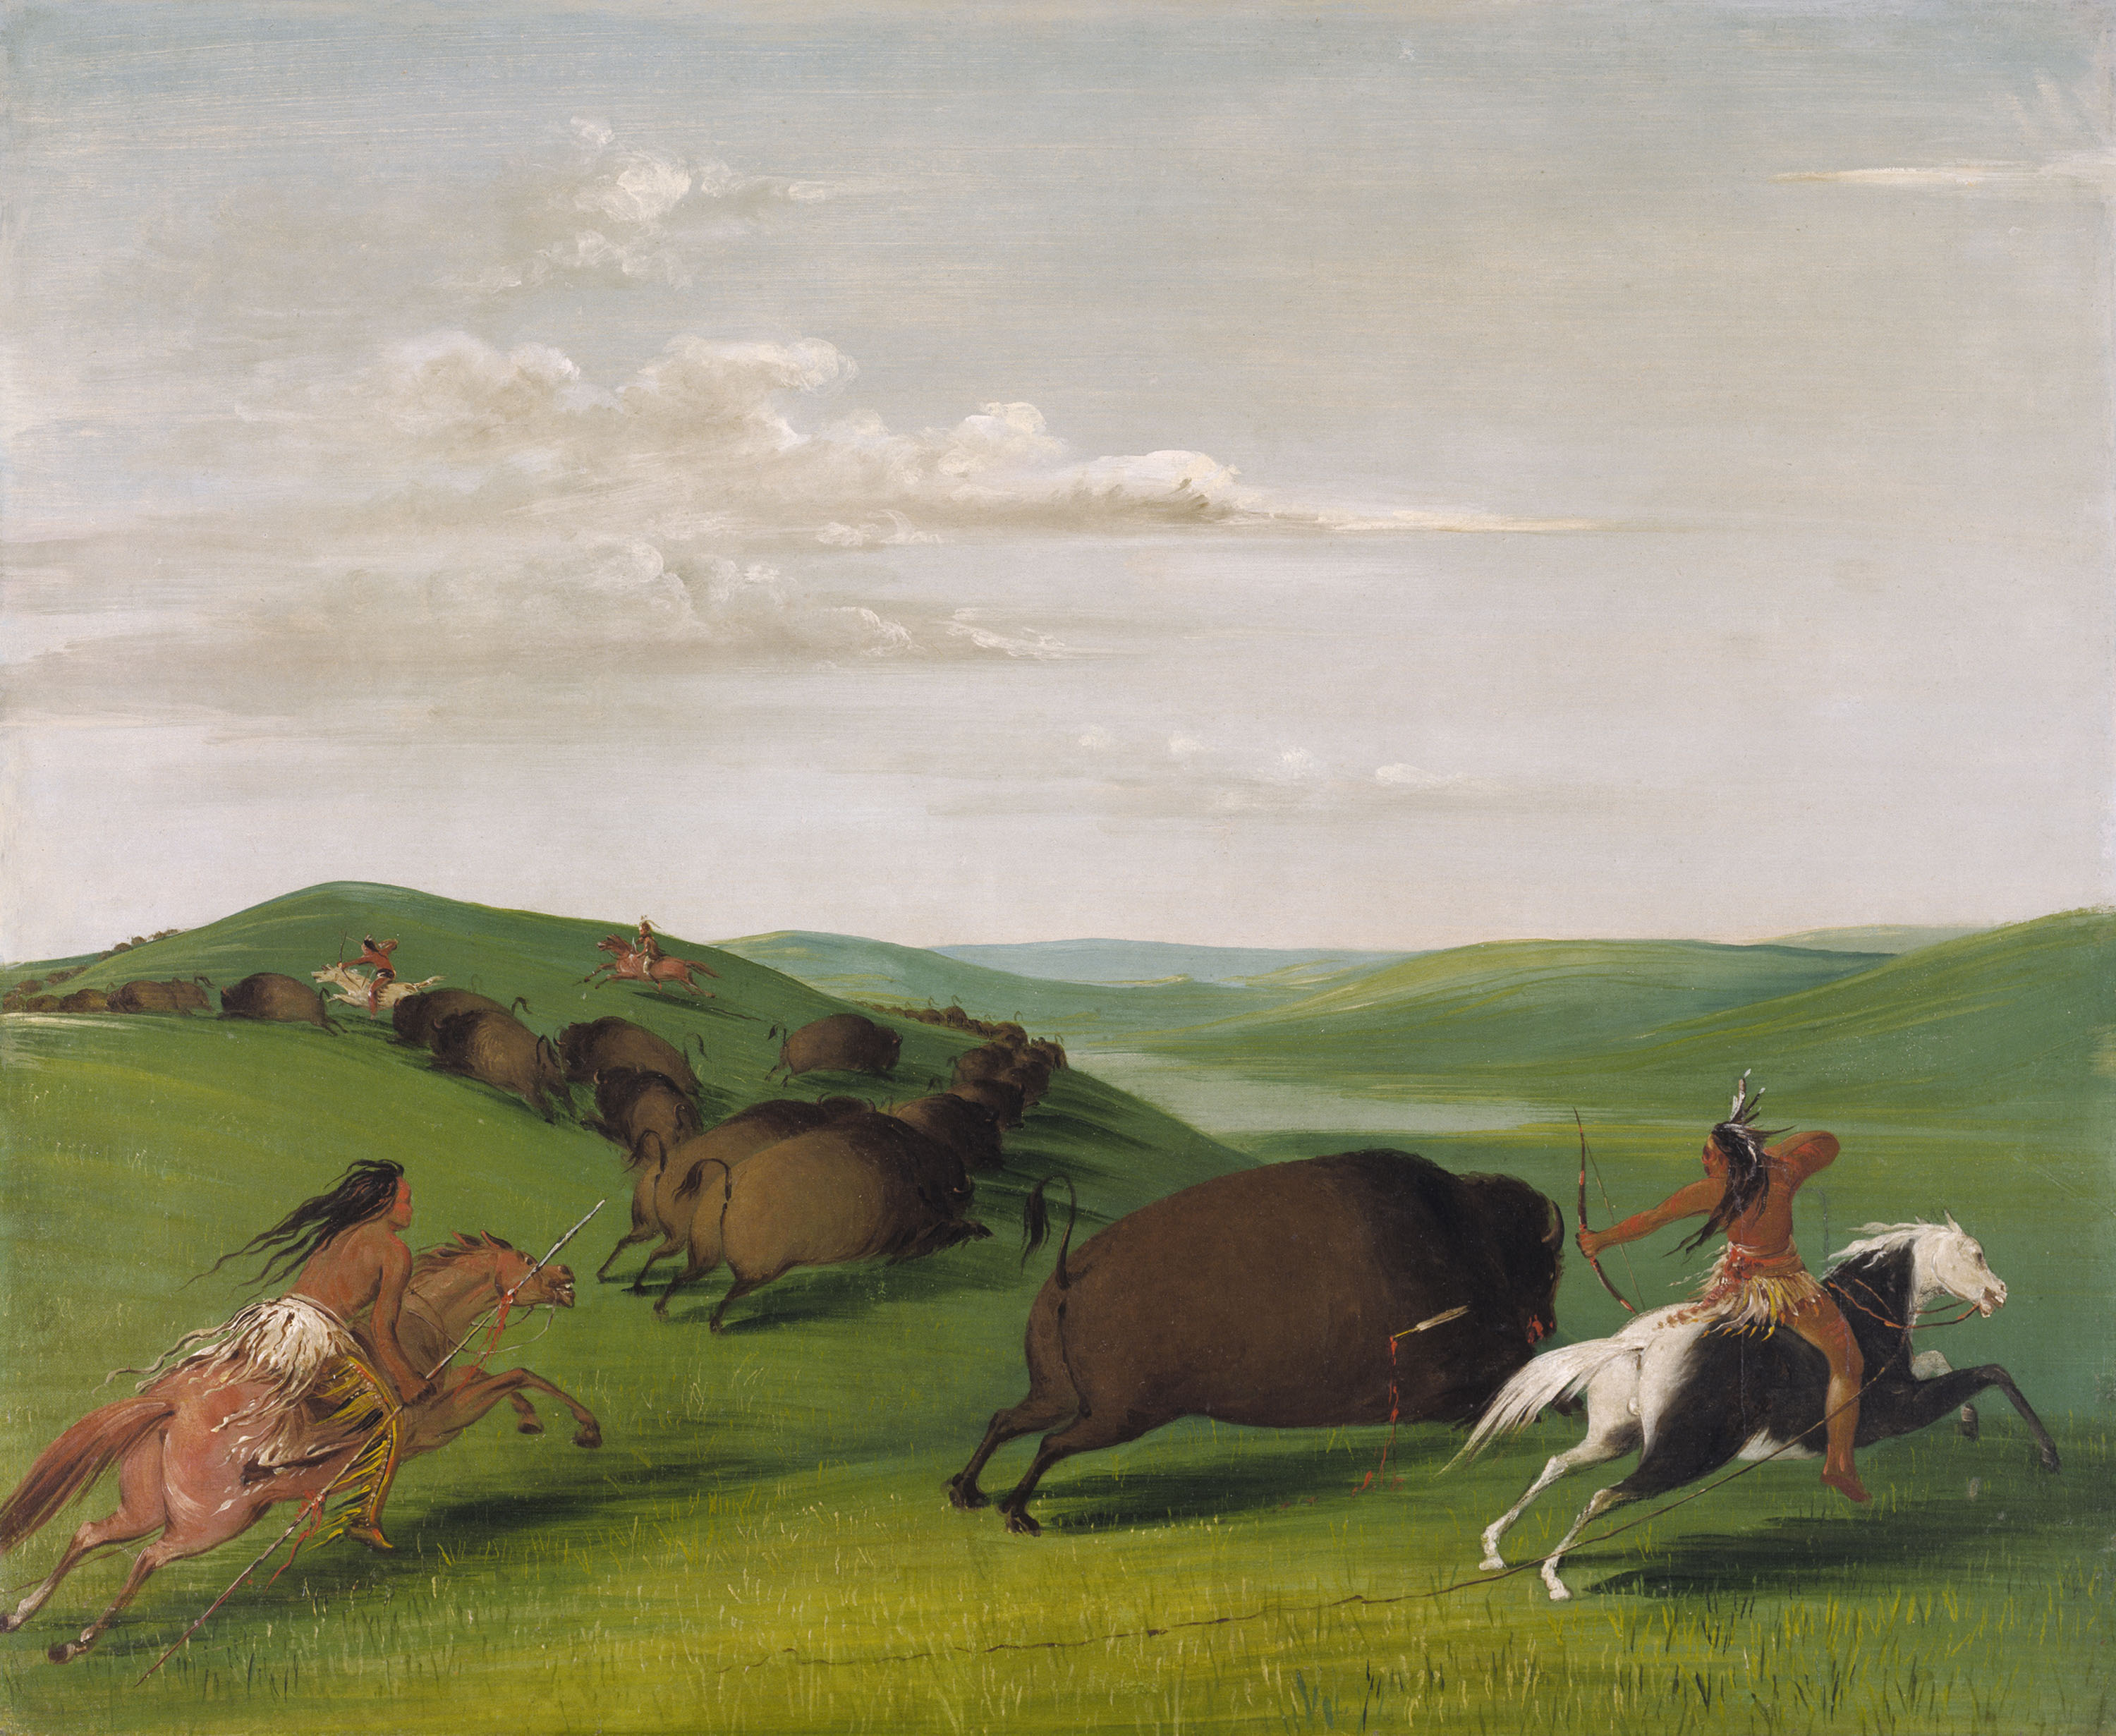 George catlin quot buffalo chase with bows and lances quot 1832 1833 oil on